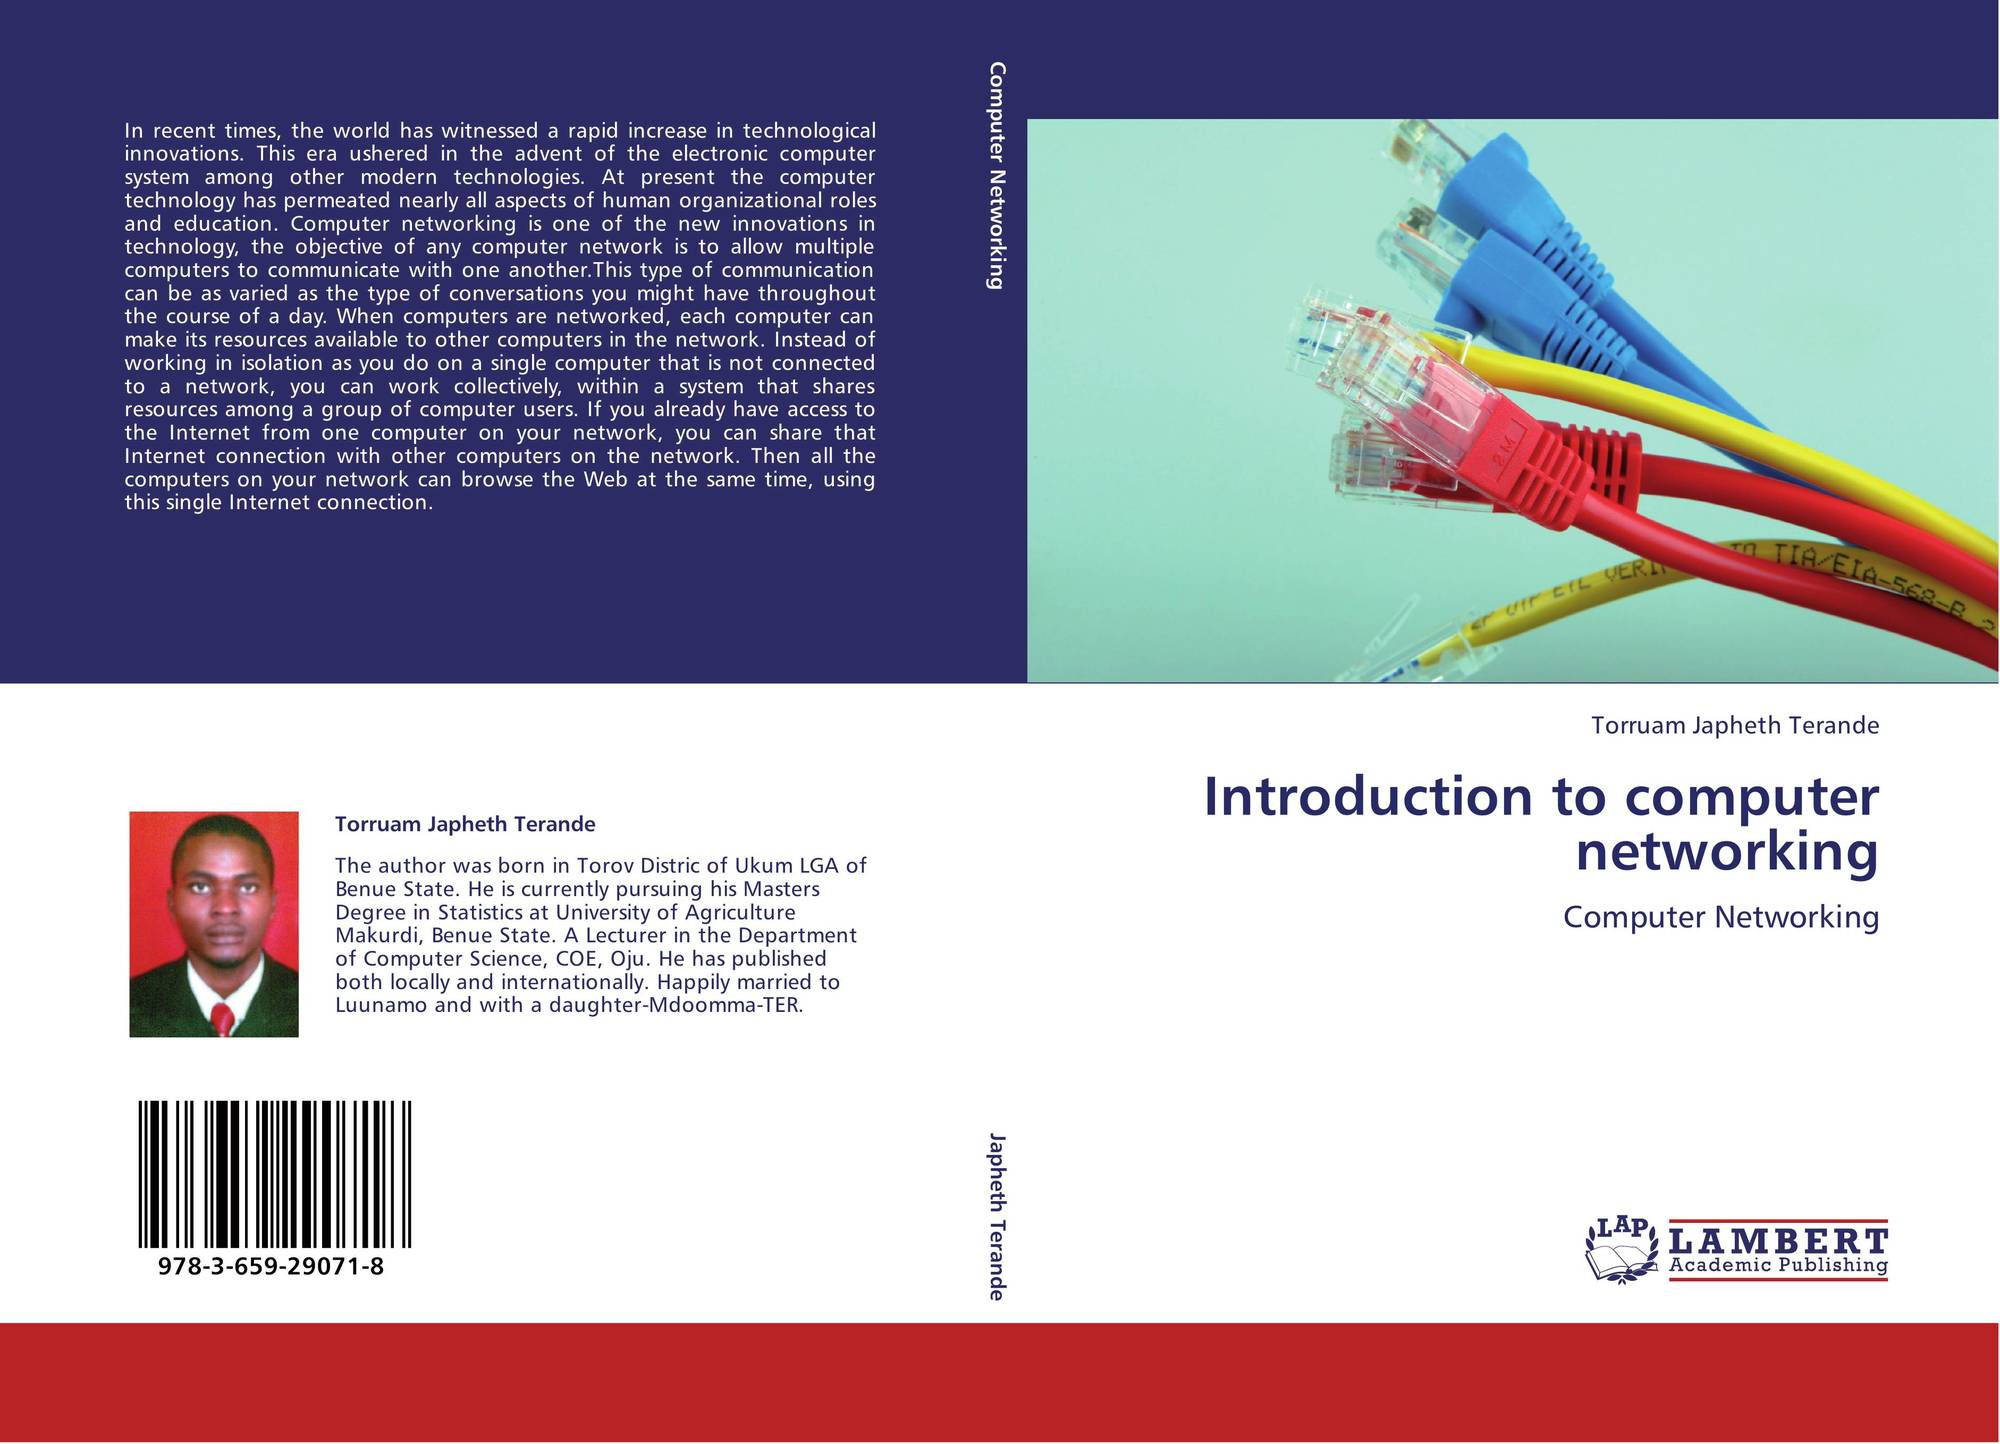 an introduction to the networking on the computer A free and open textbook covering computer networks and networking principles,  focused primarily on tcp/ip.